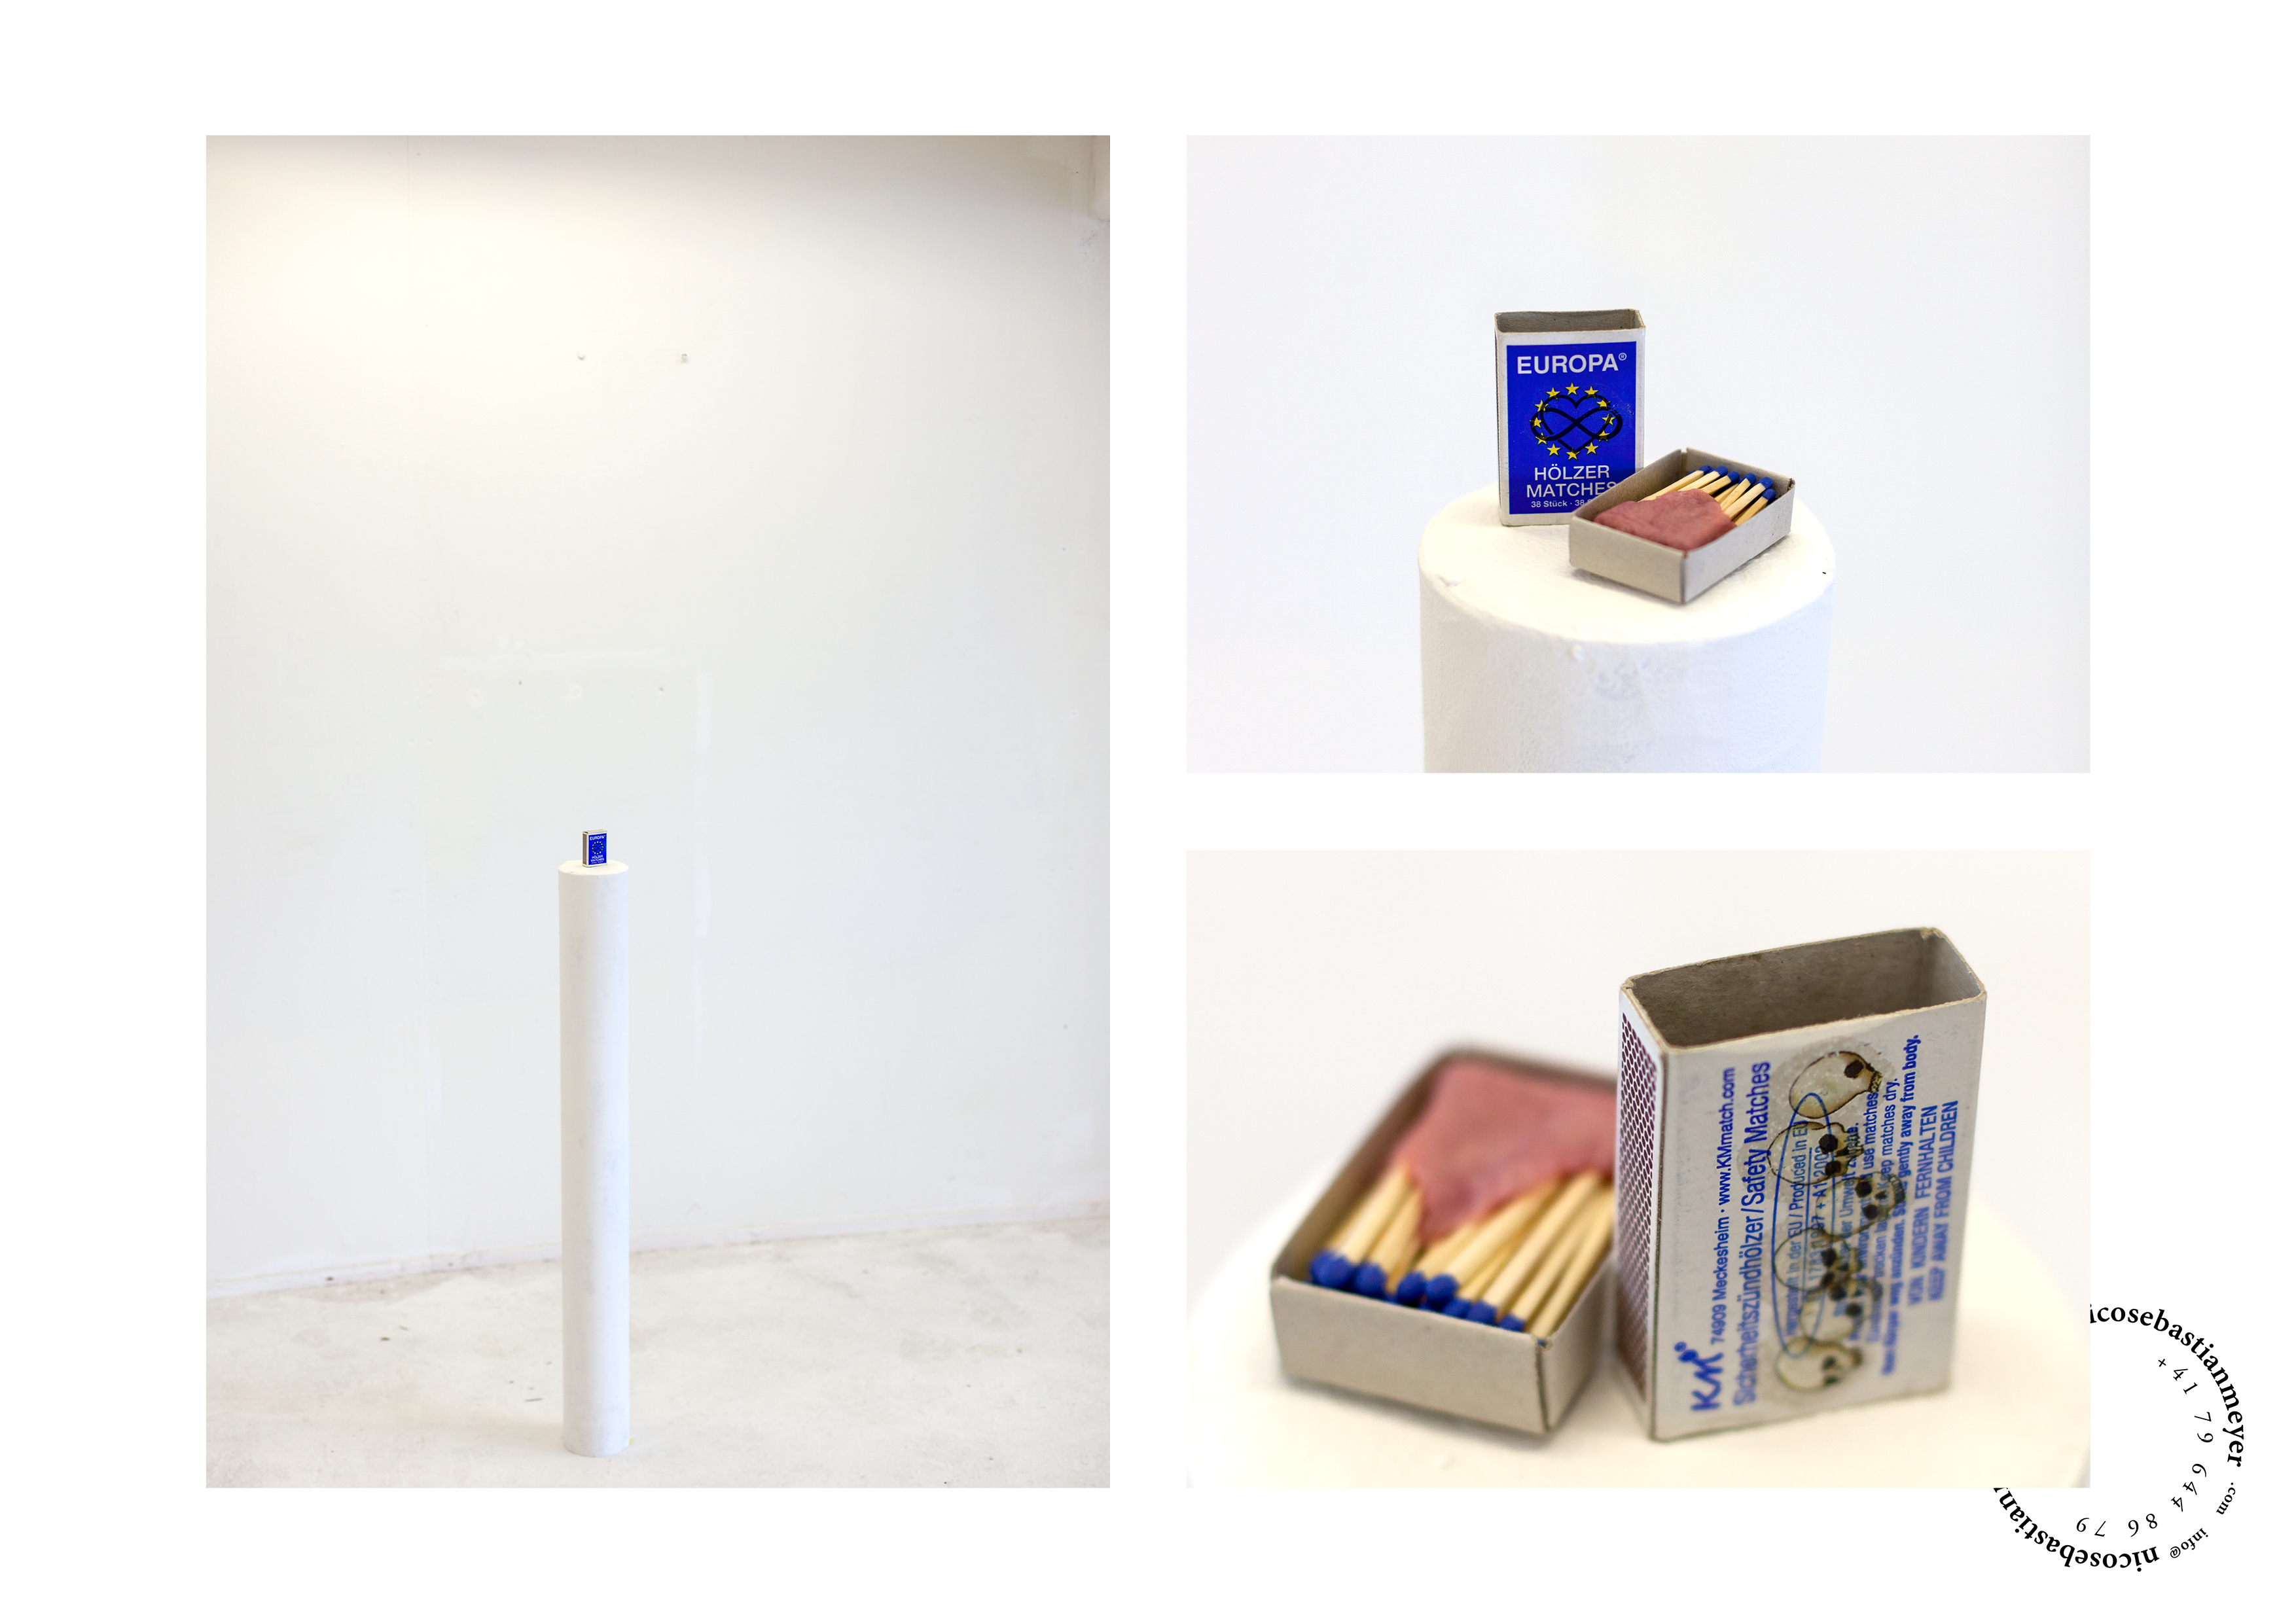 A·TI·ON·ES (Untitled Objects/Installation)